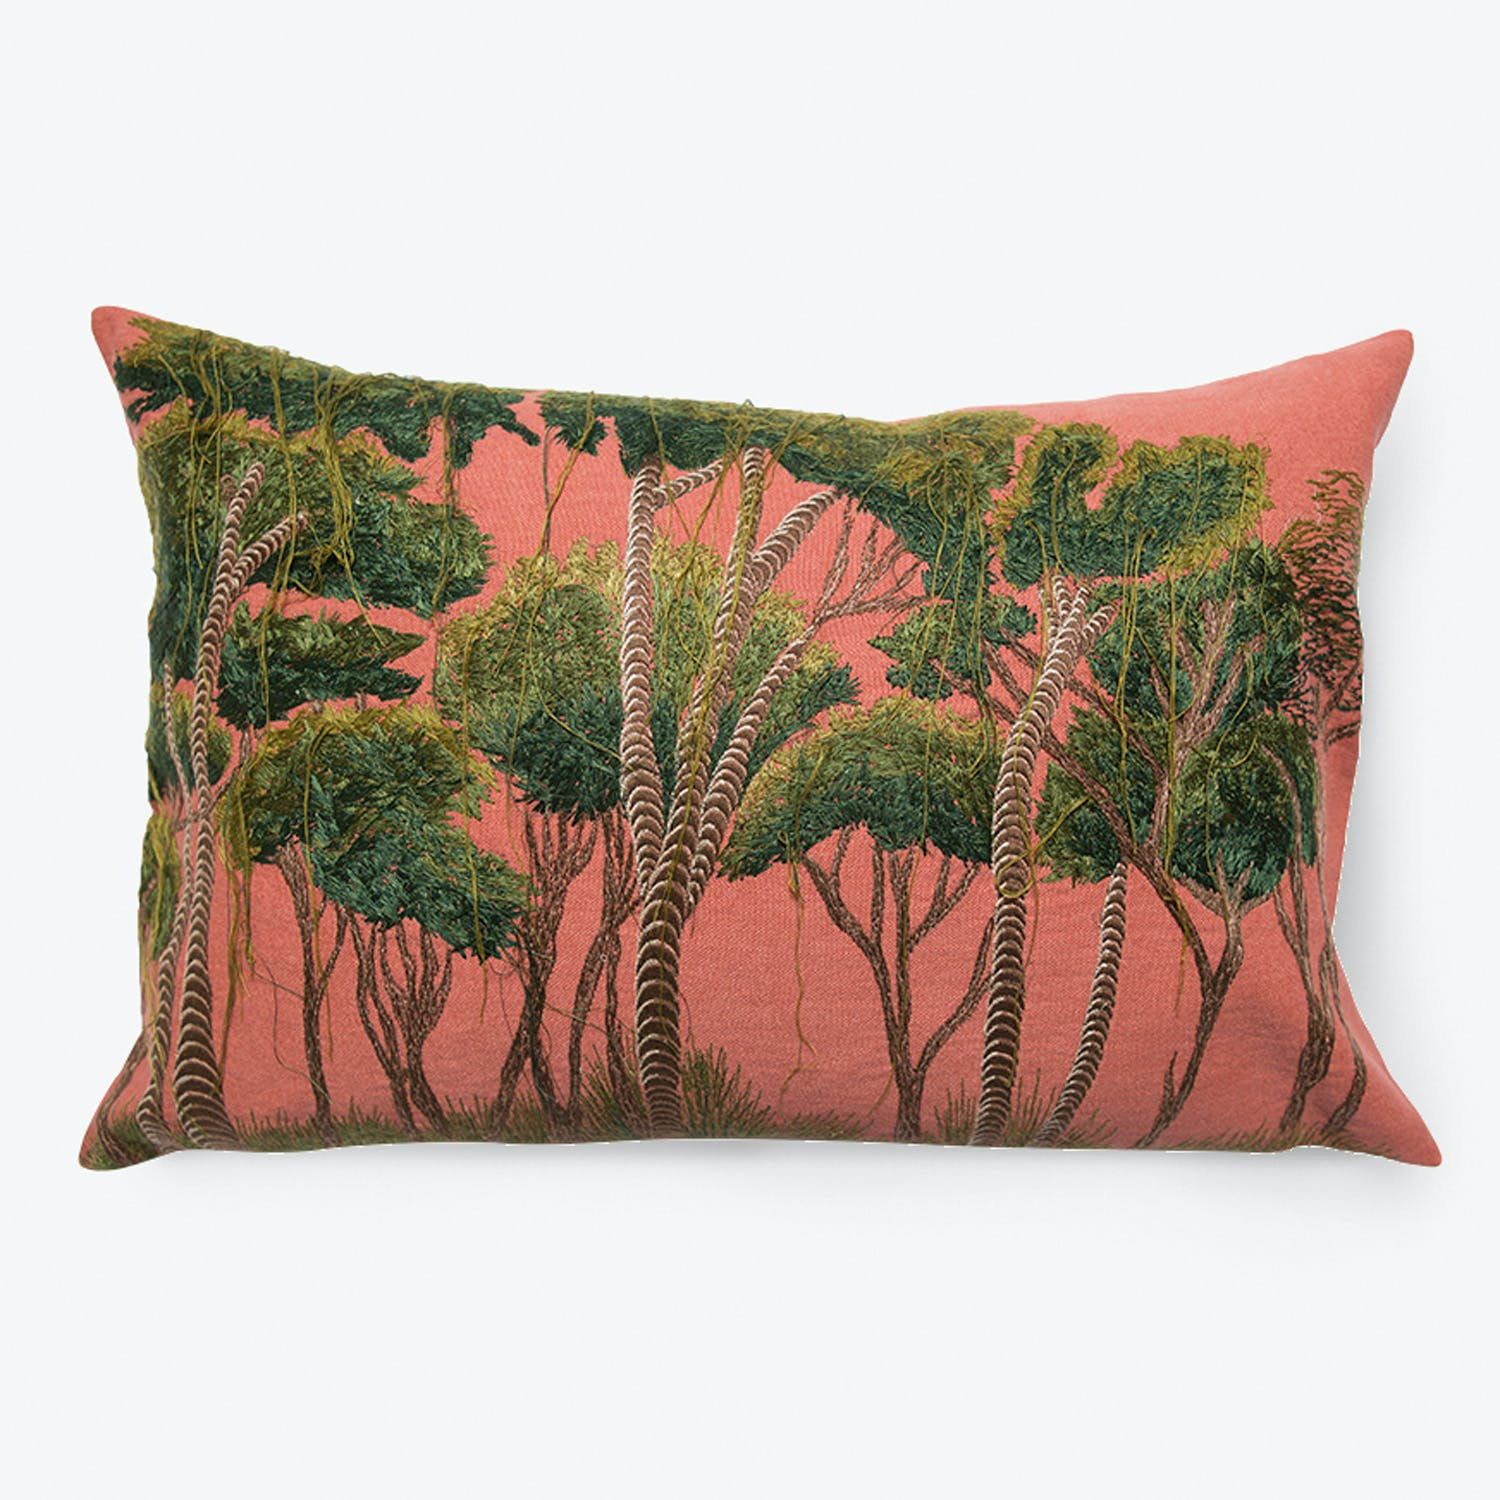 Bisri Pines Pillow, Right